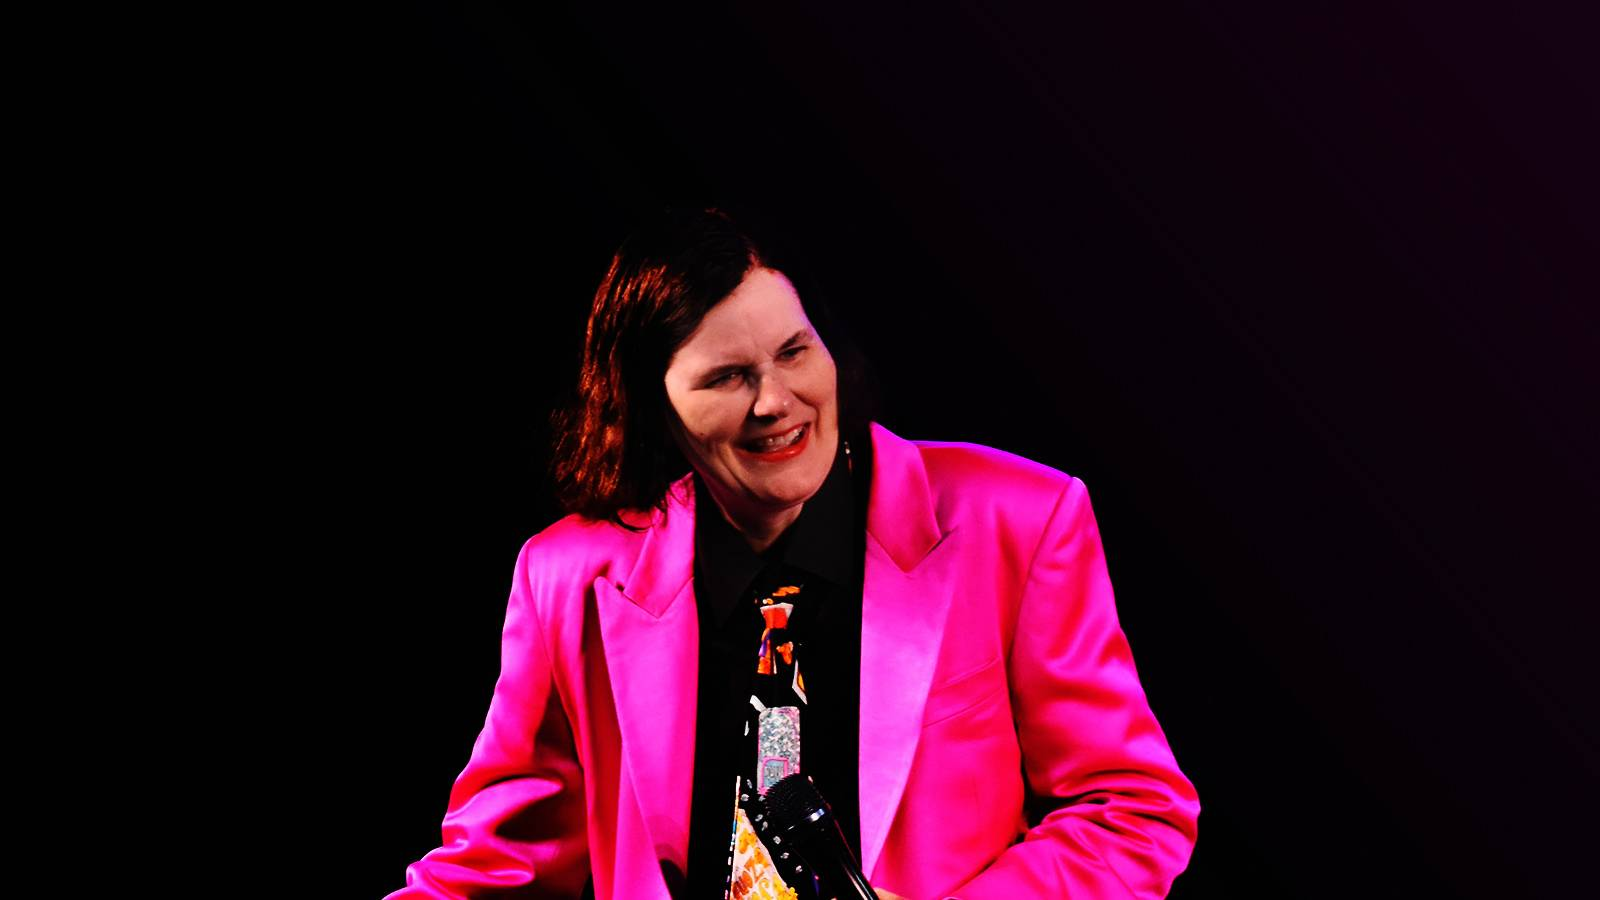 Paula Poundstone (Rescheduled from 4/30/2020, 7/31/2020)